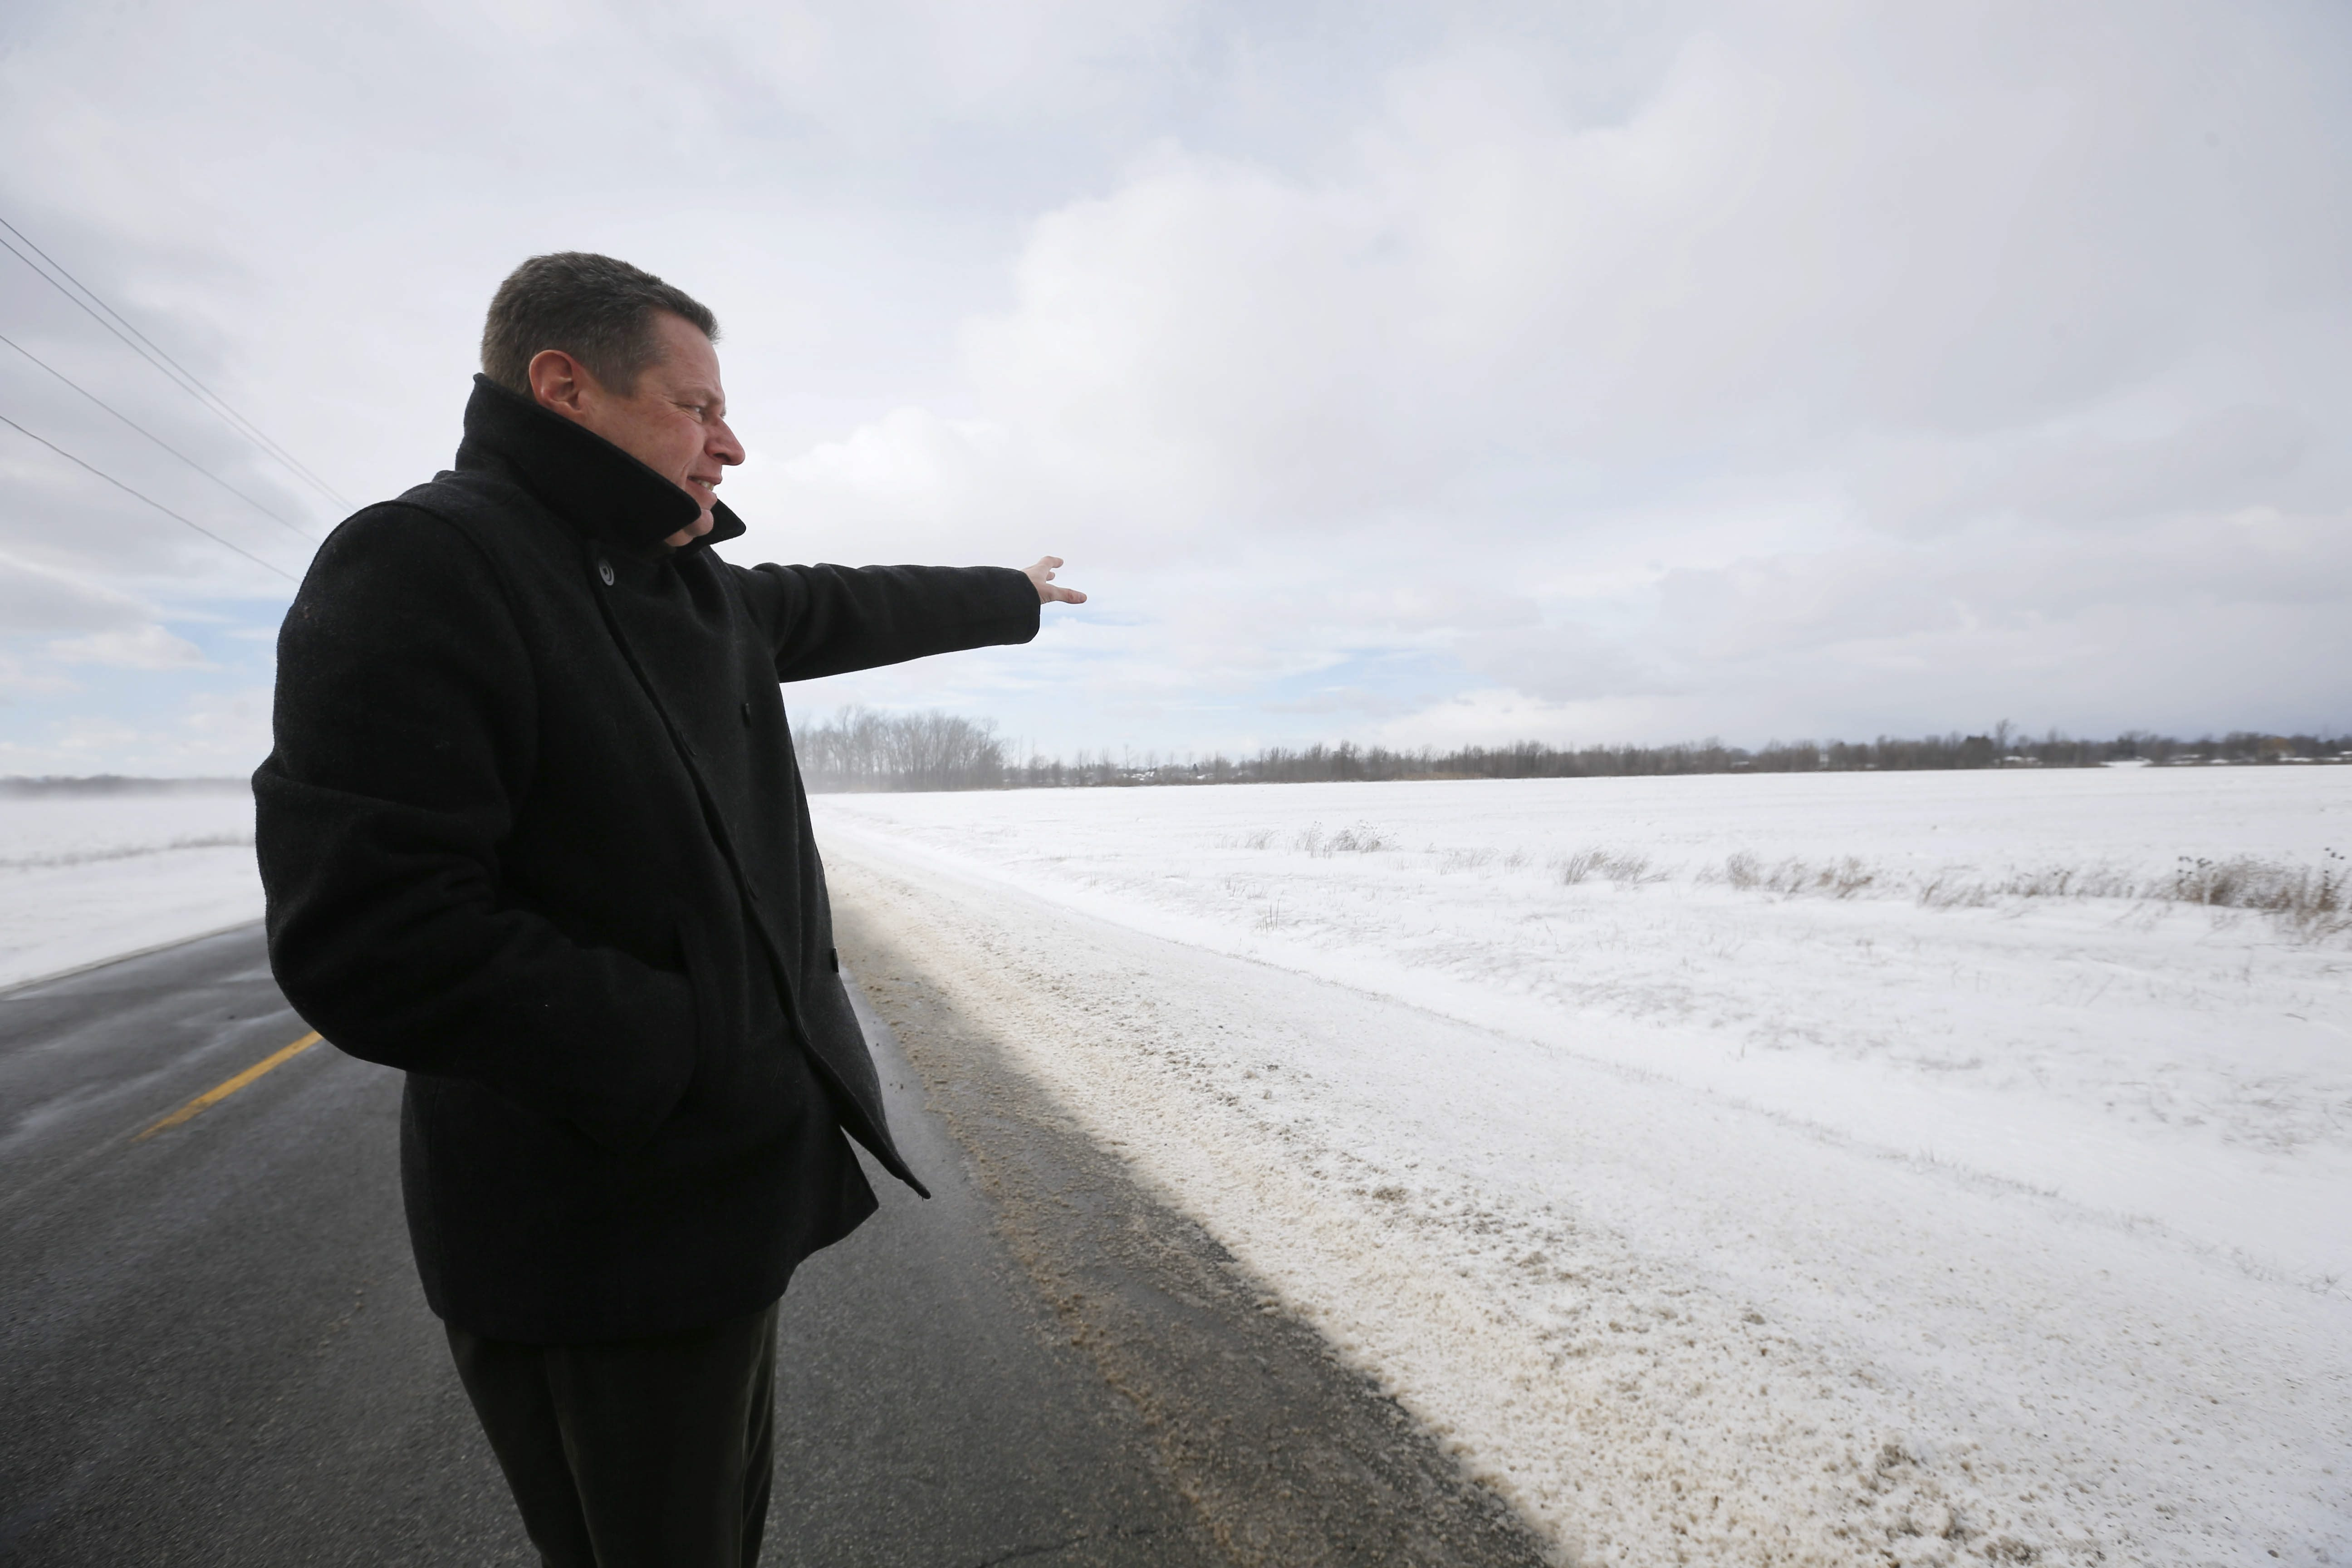 Ronald C. Kraemer, president of Empire Pipeline, points to the field on Killian Road in Pendleton where the company wants to build a compressor station, part of the project to send fracked natural gas from Pennsylvania into Canada.